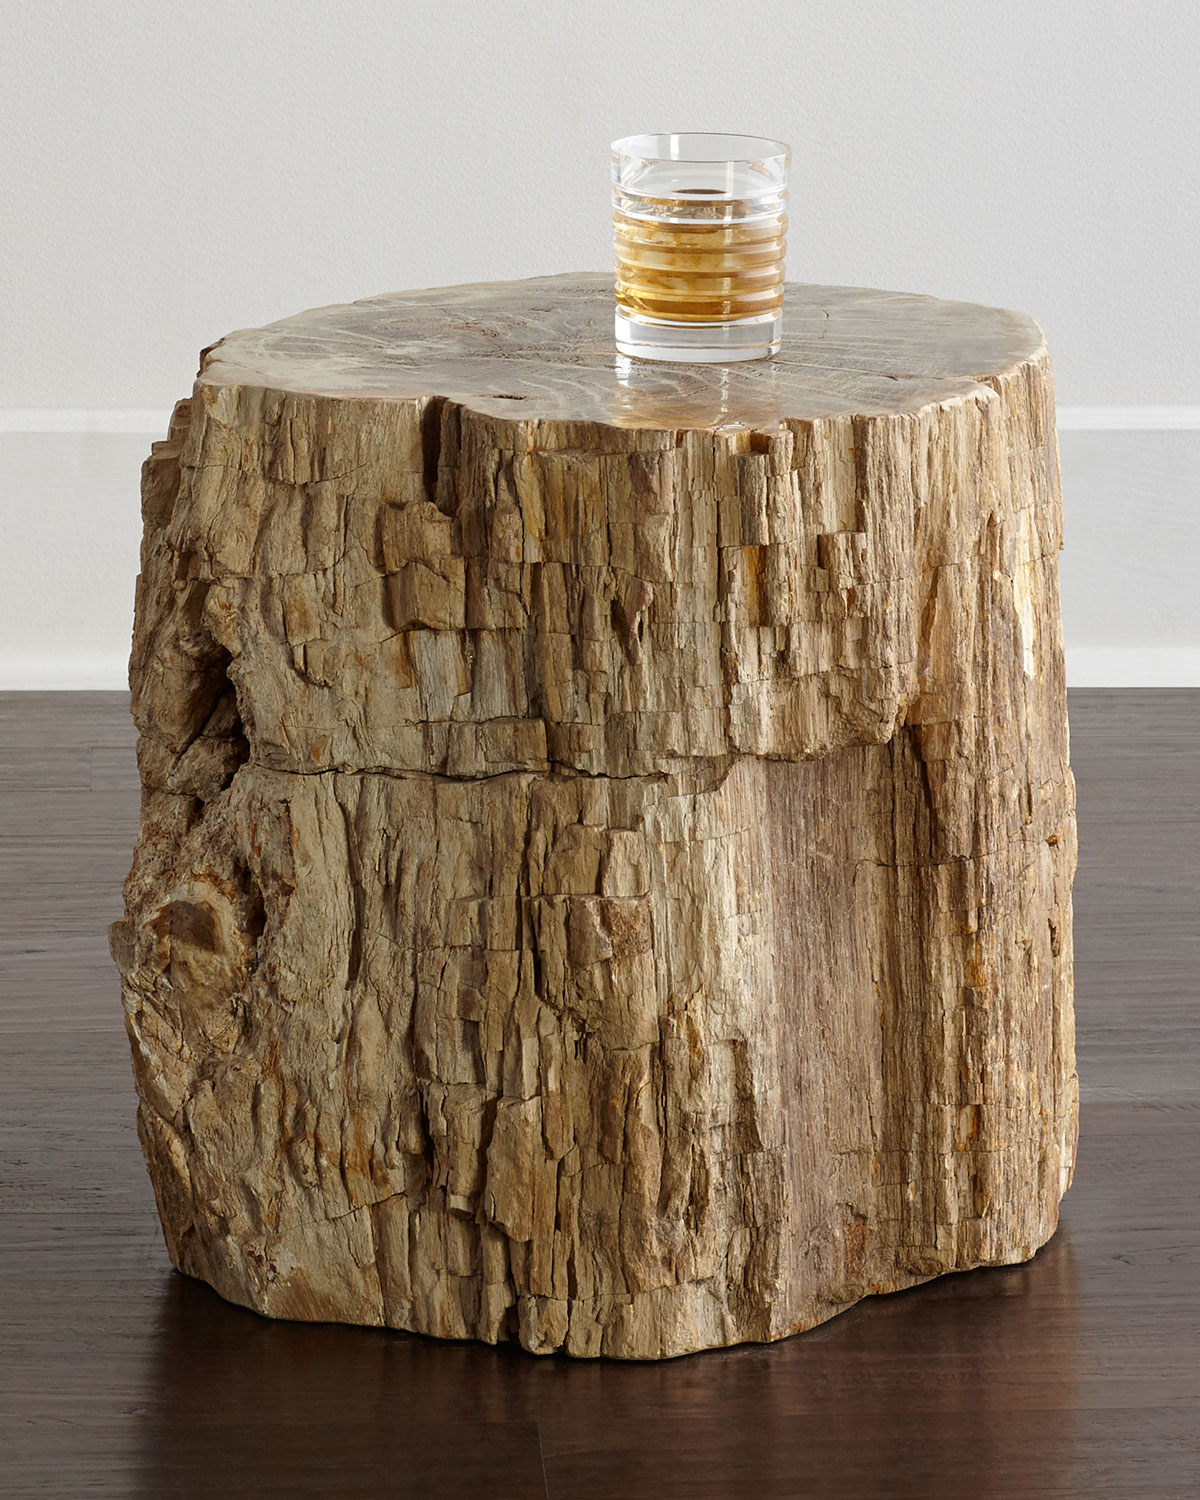 Tree Stump Furniture Designs Amp Ideas On Dornob